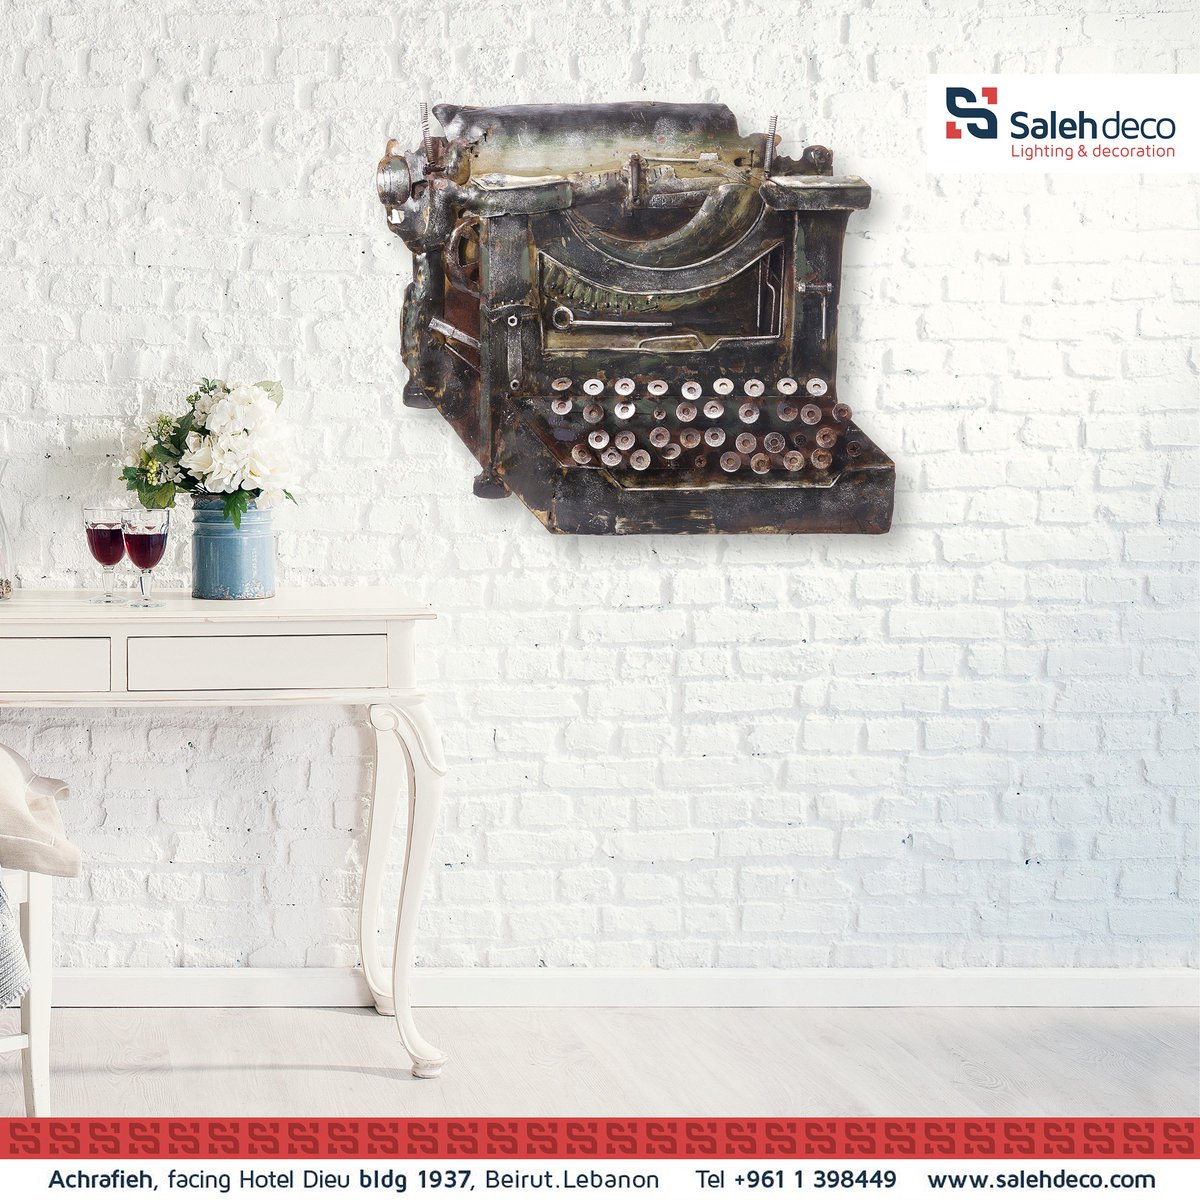 Metallic Typewriter to to add an Industrial touch to your wall! #interiordesign #homedeco #interiordesign #salehdeco https://t.co/iHT36krCiy